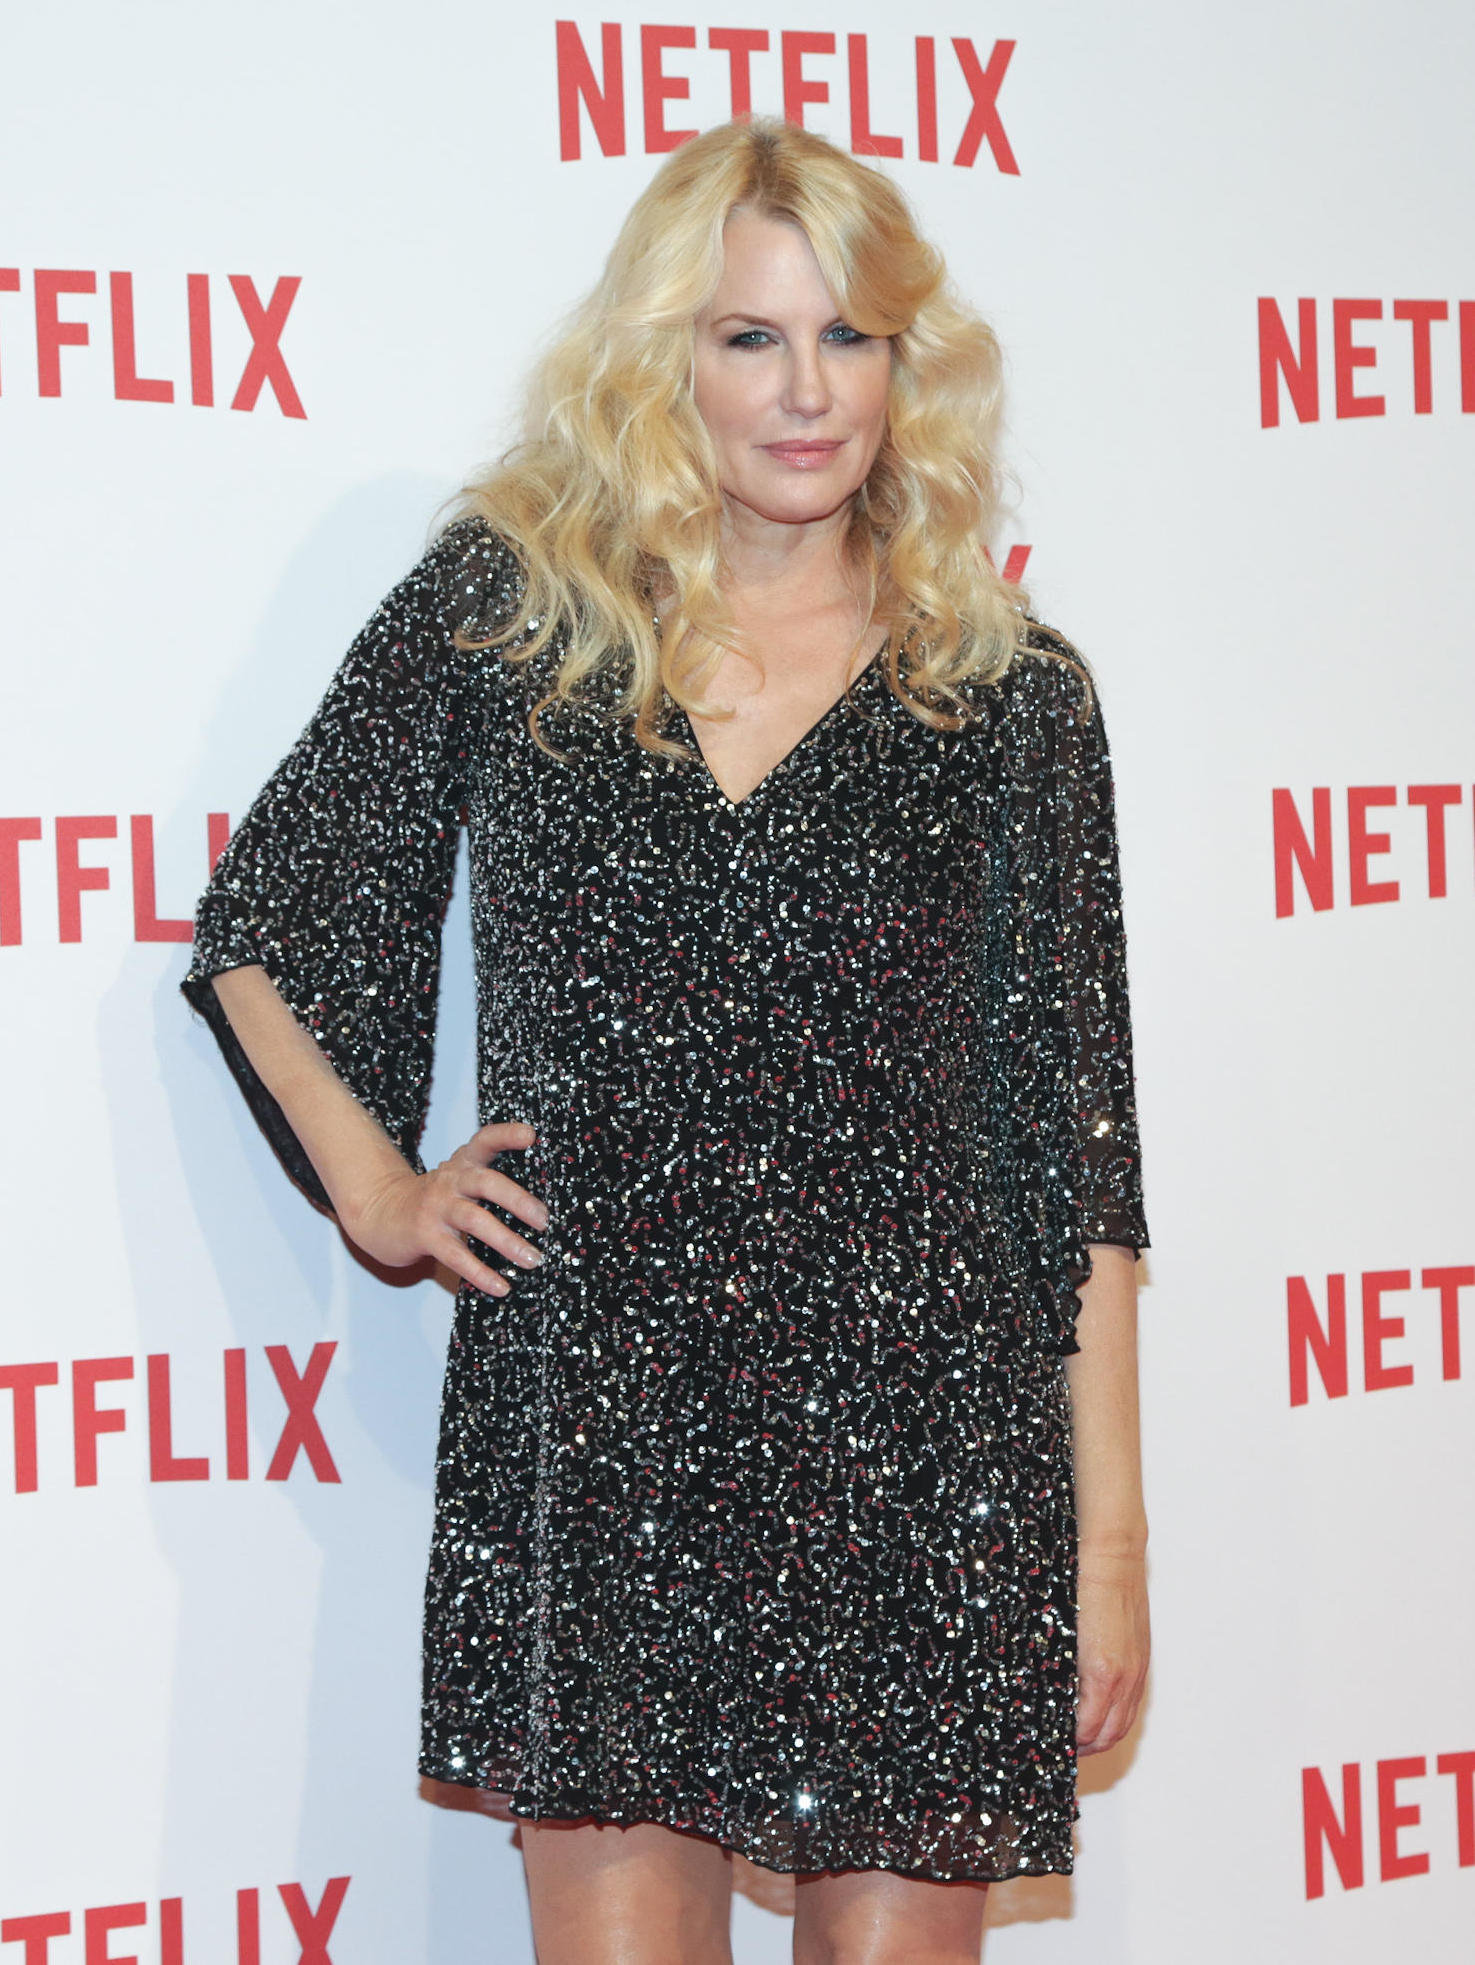 Daryl Hannah at the Netflix launch held at Palazzo Del Ghiaccio in Milano on Oct. 22 2015. (KIKA/WENN.com)